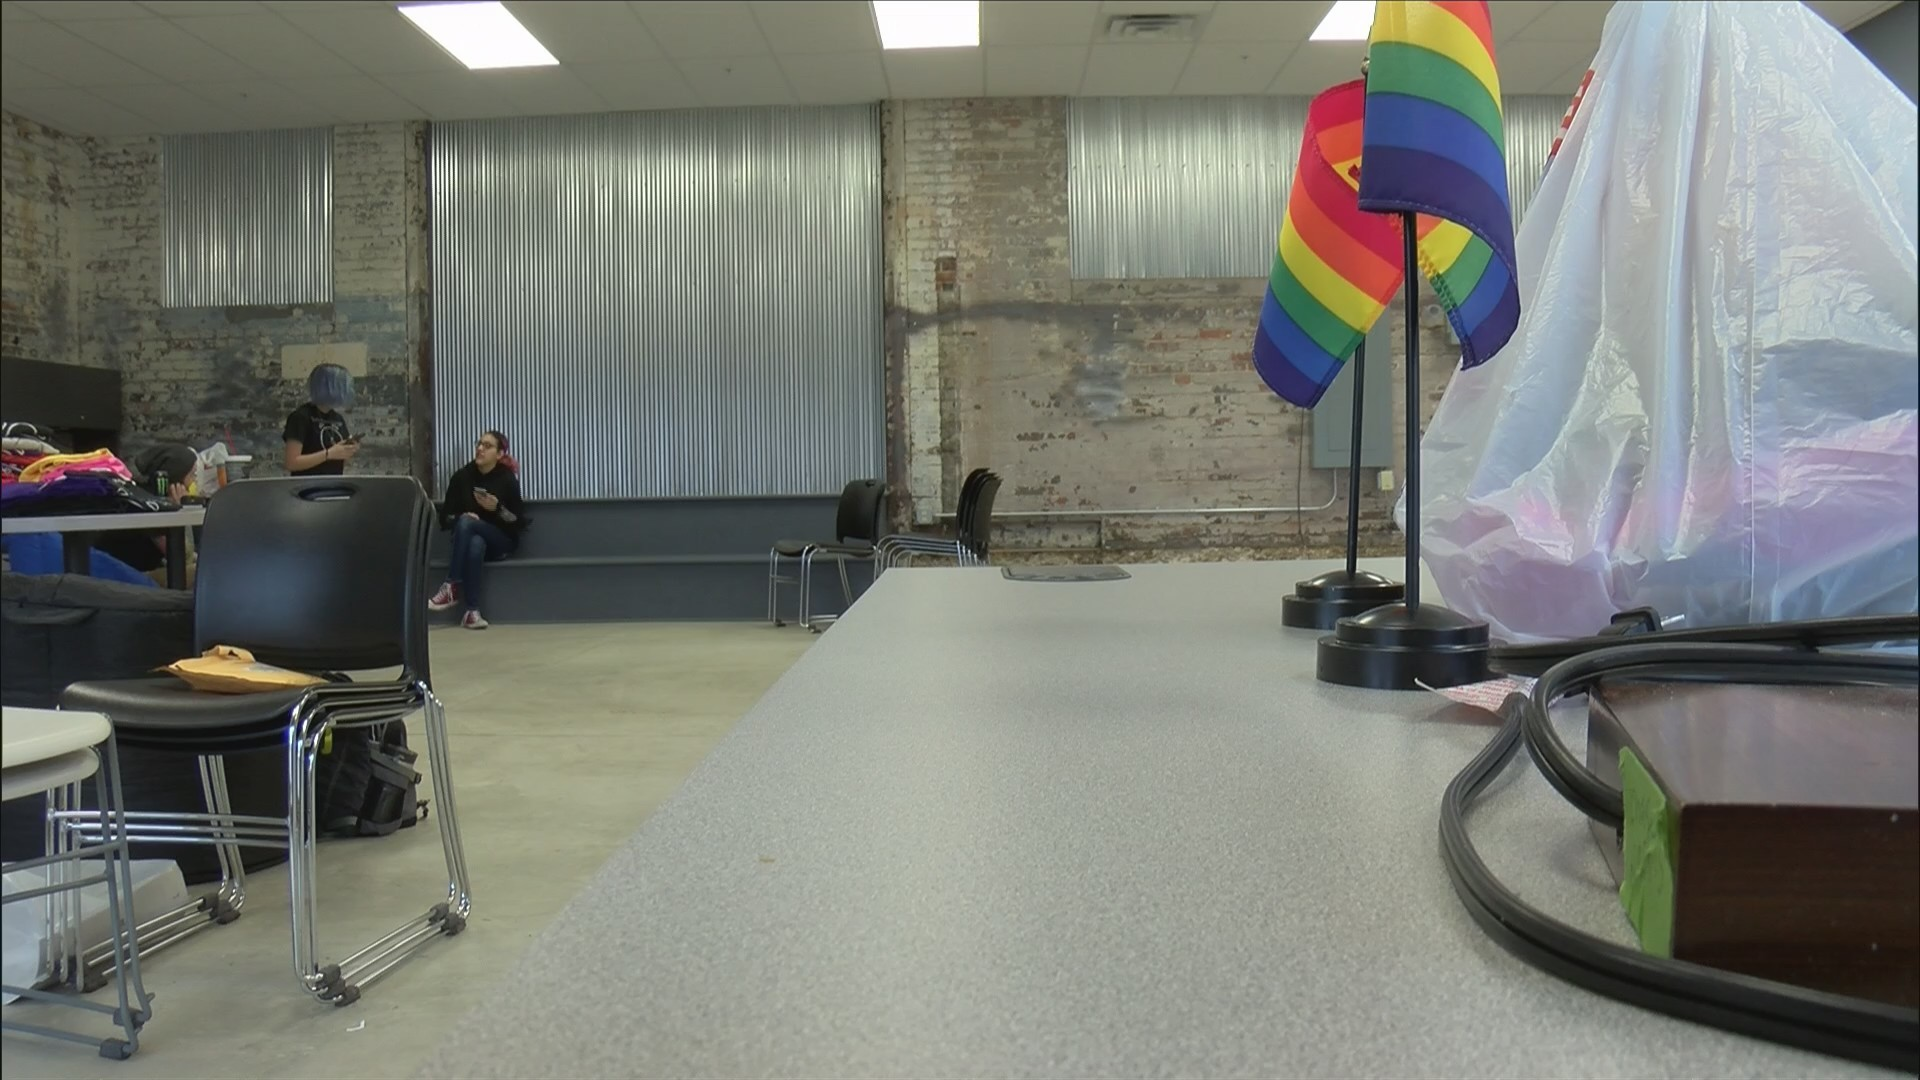 Clock Inc. finds home for community center